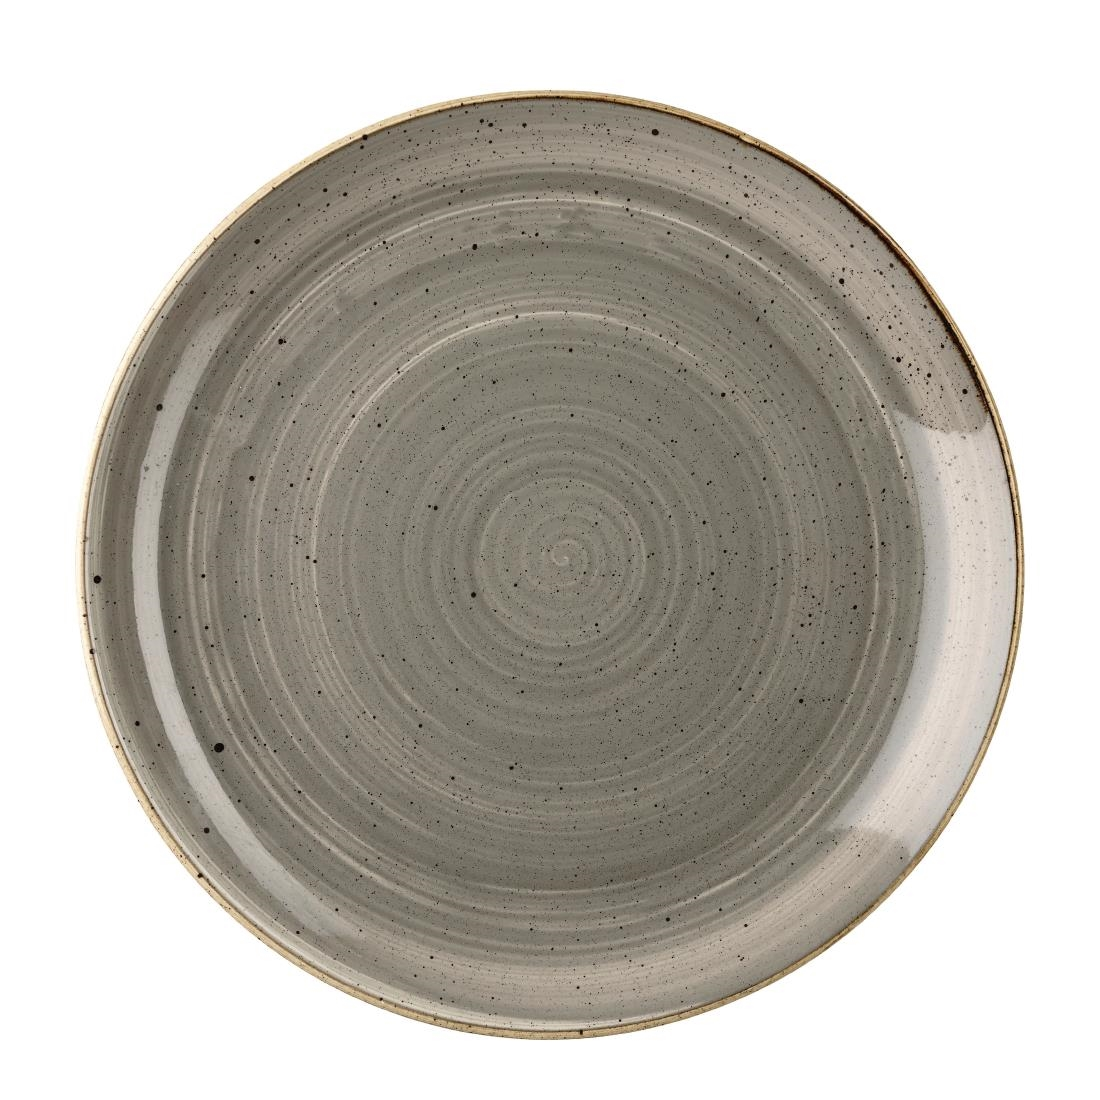 ... churchill-stonecast-round-coupe-plates-peppercorn-grey-295mm  sc 1 st  Nisbets & Churchill Stonecast Round Coupe Plate Peppercorn Grey 260mm - DK553 ...